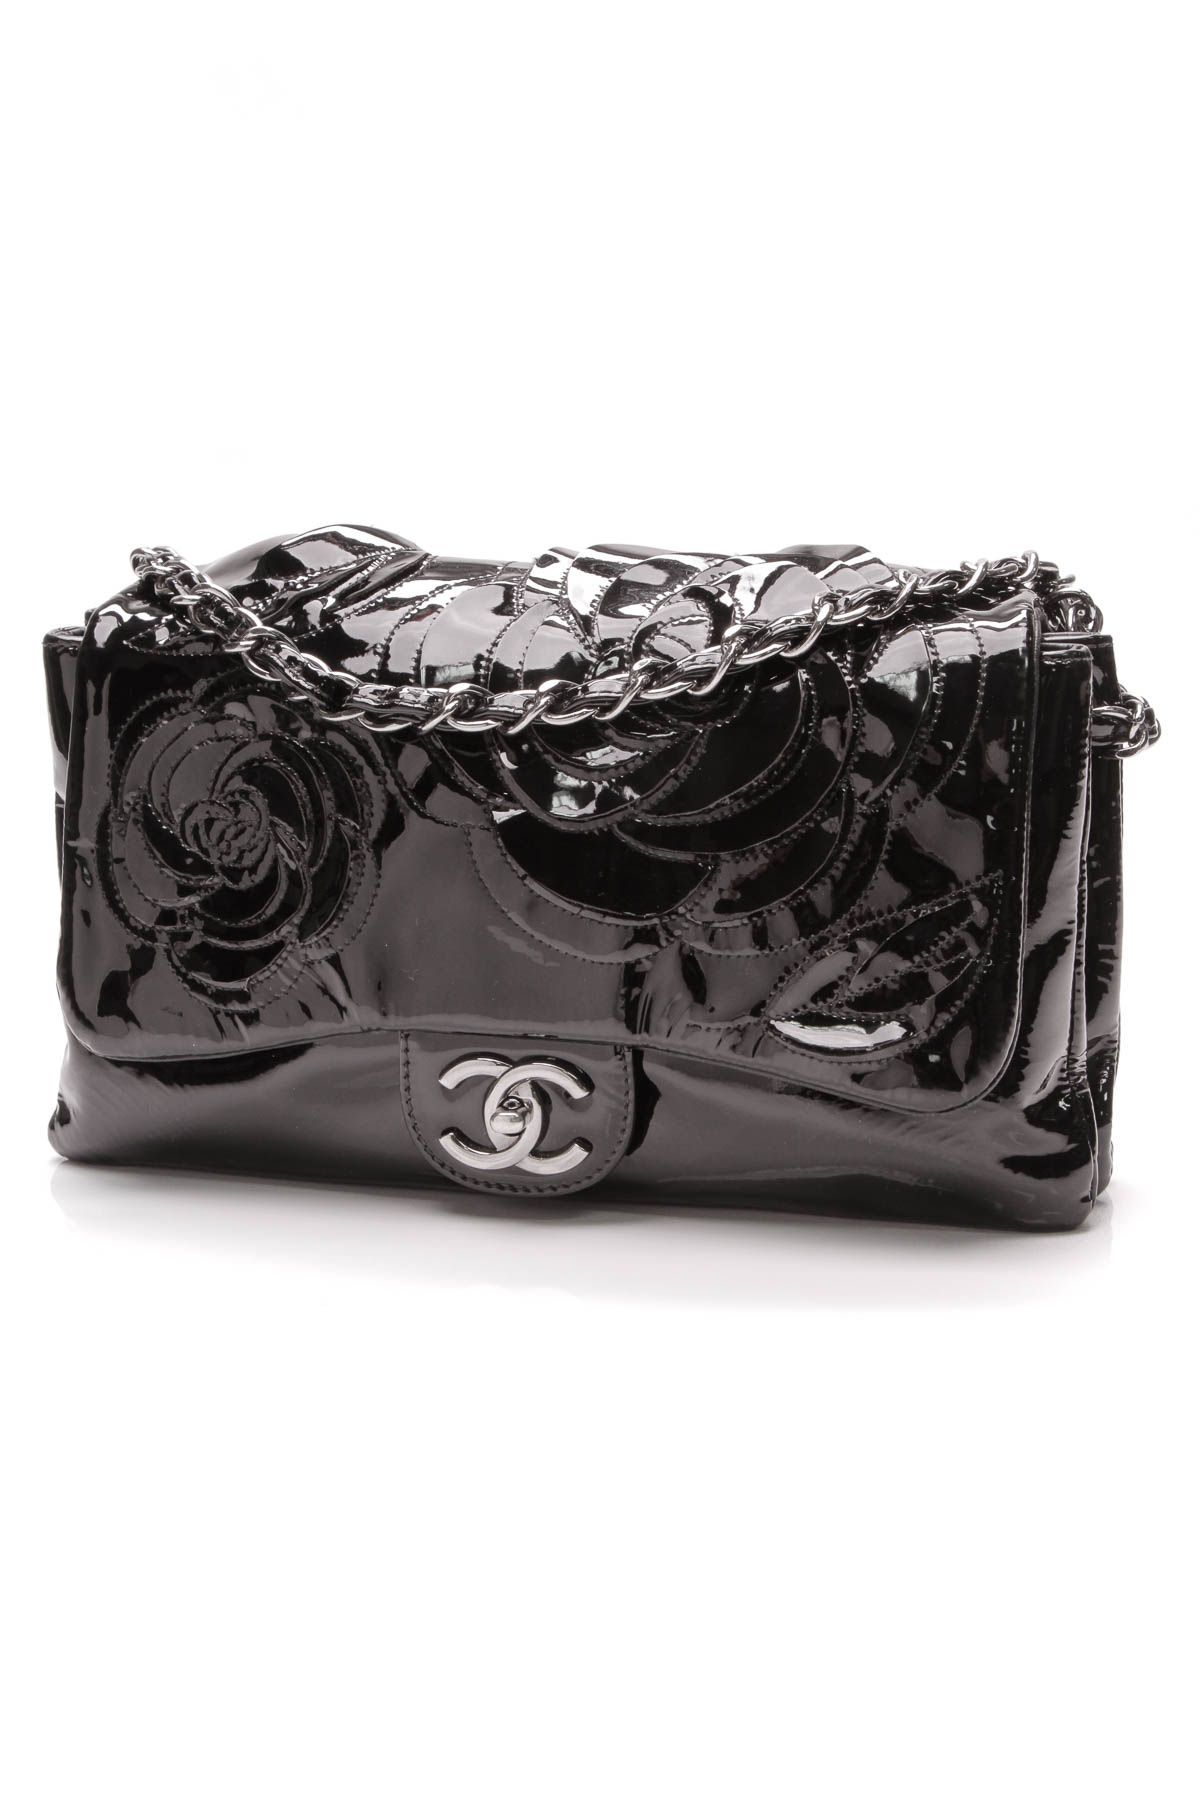 8c47660d9395 Camellia Accordion Flap Bag - Patent Leather in 2019 | It's Black ...